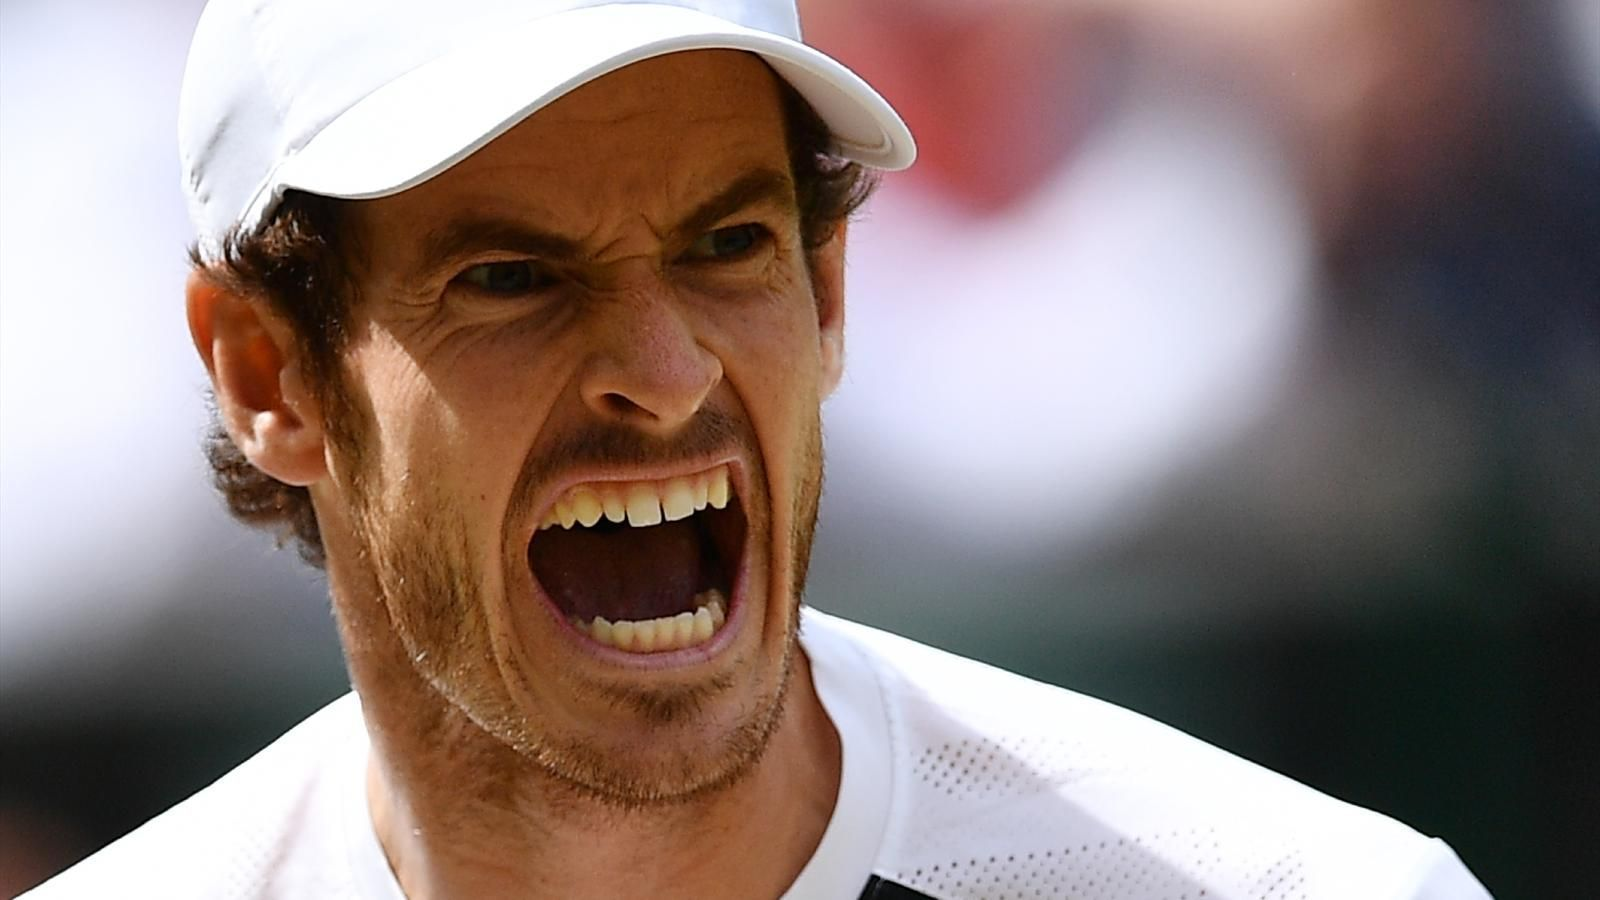 """A player at the top of his game"" - how the press reacted to Murray's triumph"